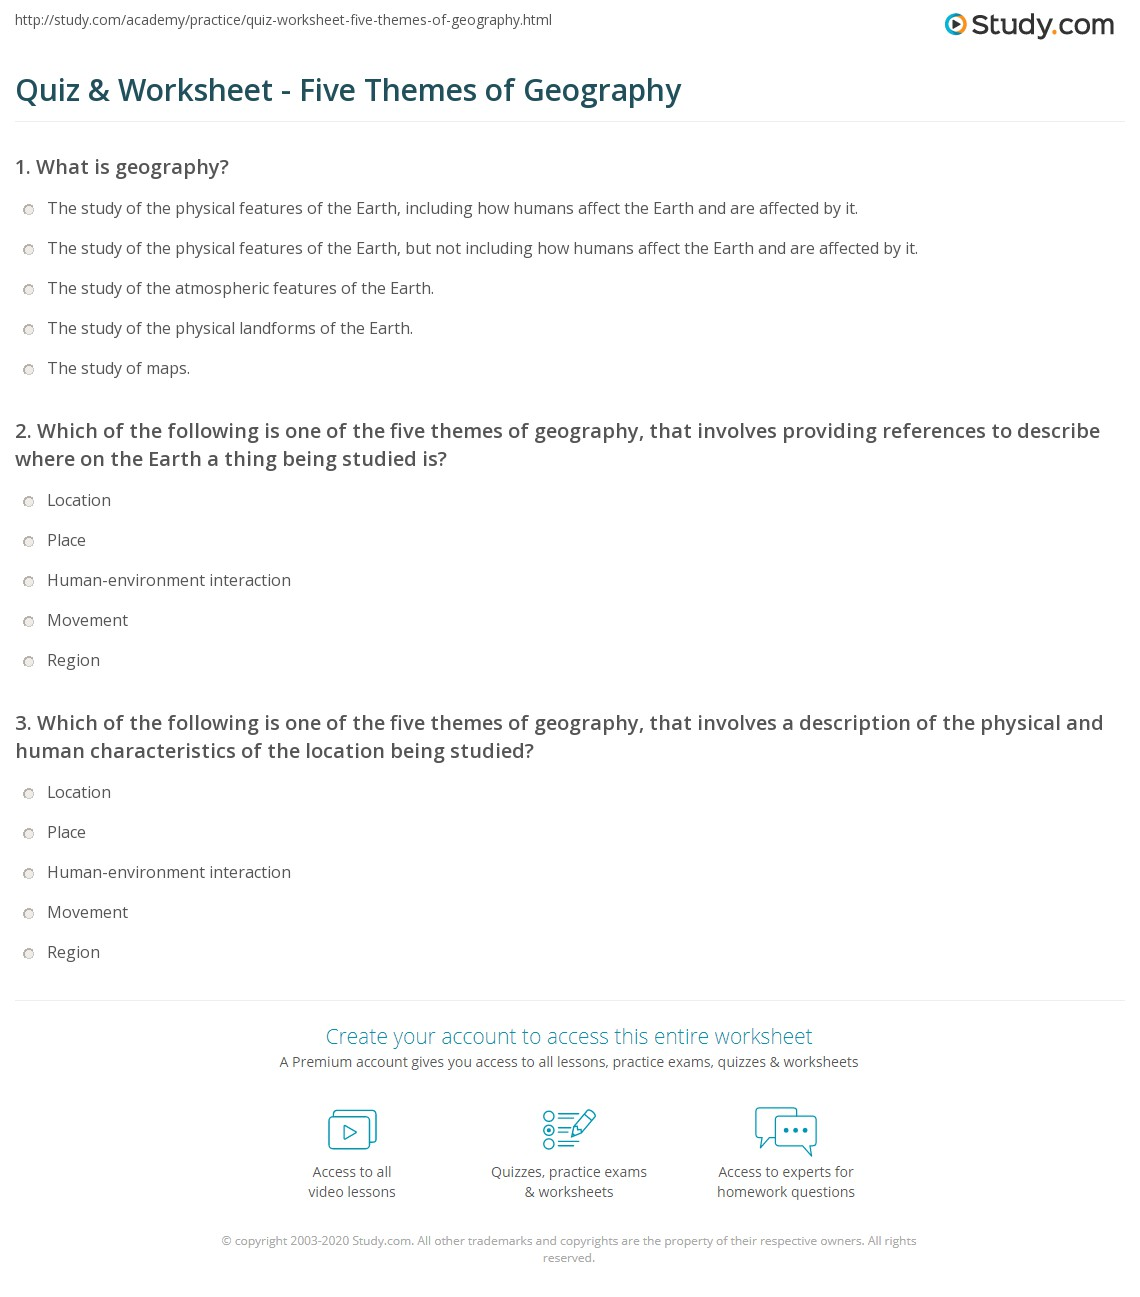 Worksheets 5 Themes Of Geography Worksheets quiz worksheet five themes of geography study com print what are the worksheet